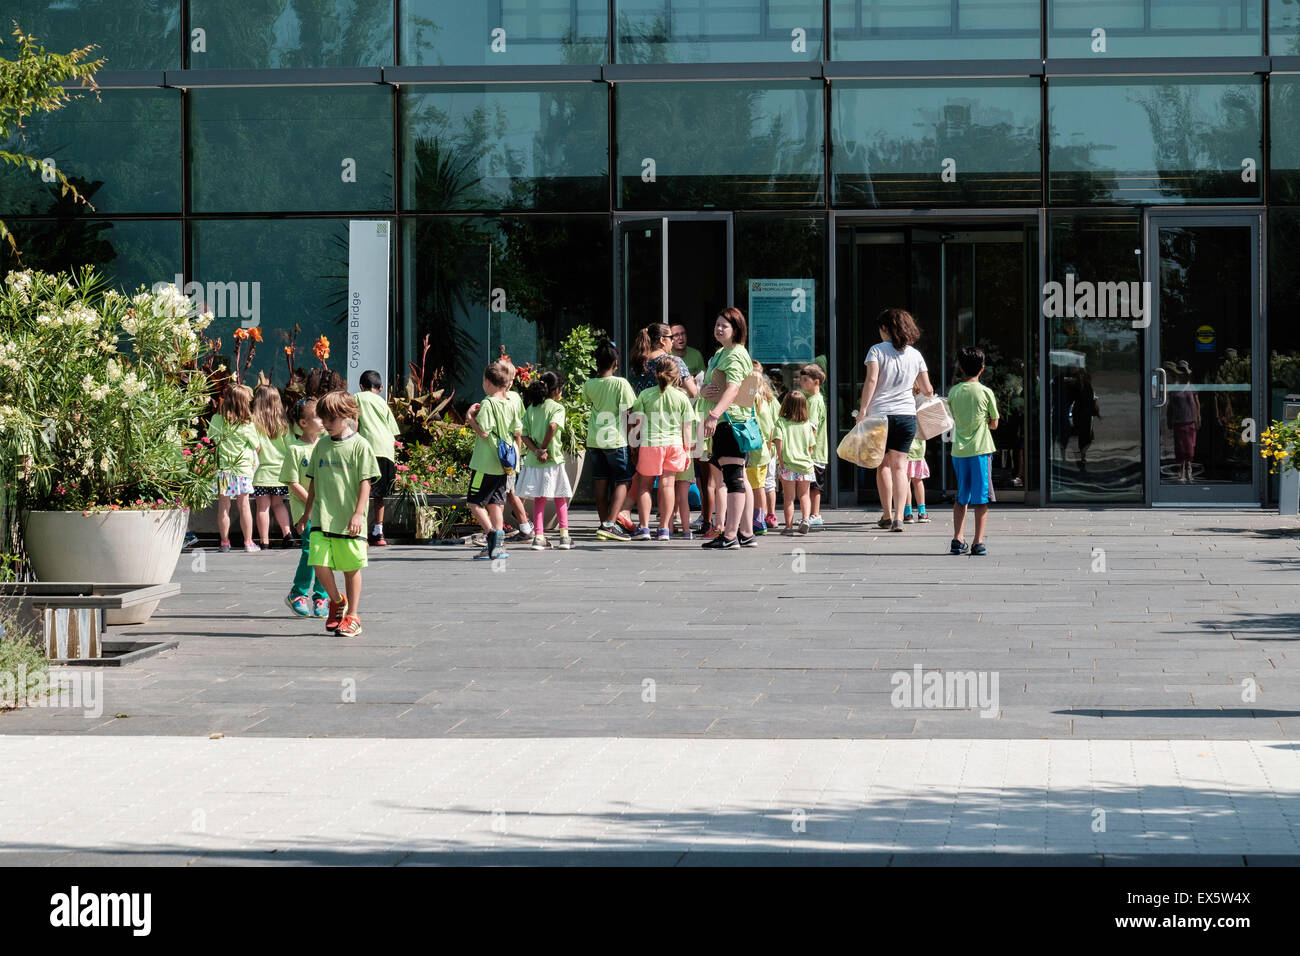 Caretakers take a large group of children from a summer day care on a field trip to the Crystal Bridge conservatory - Stock Image